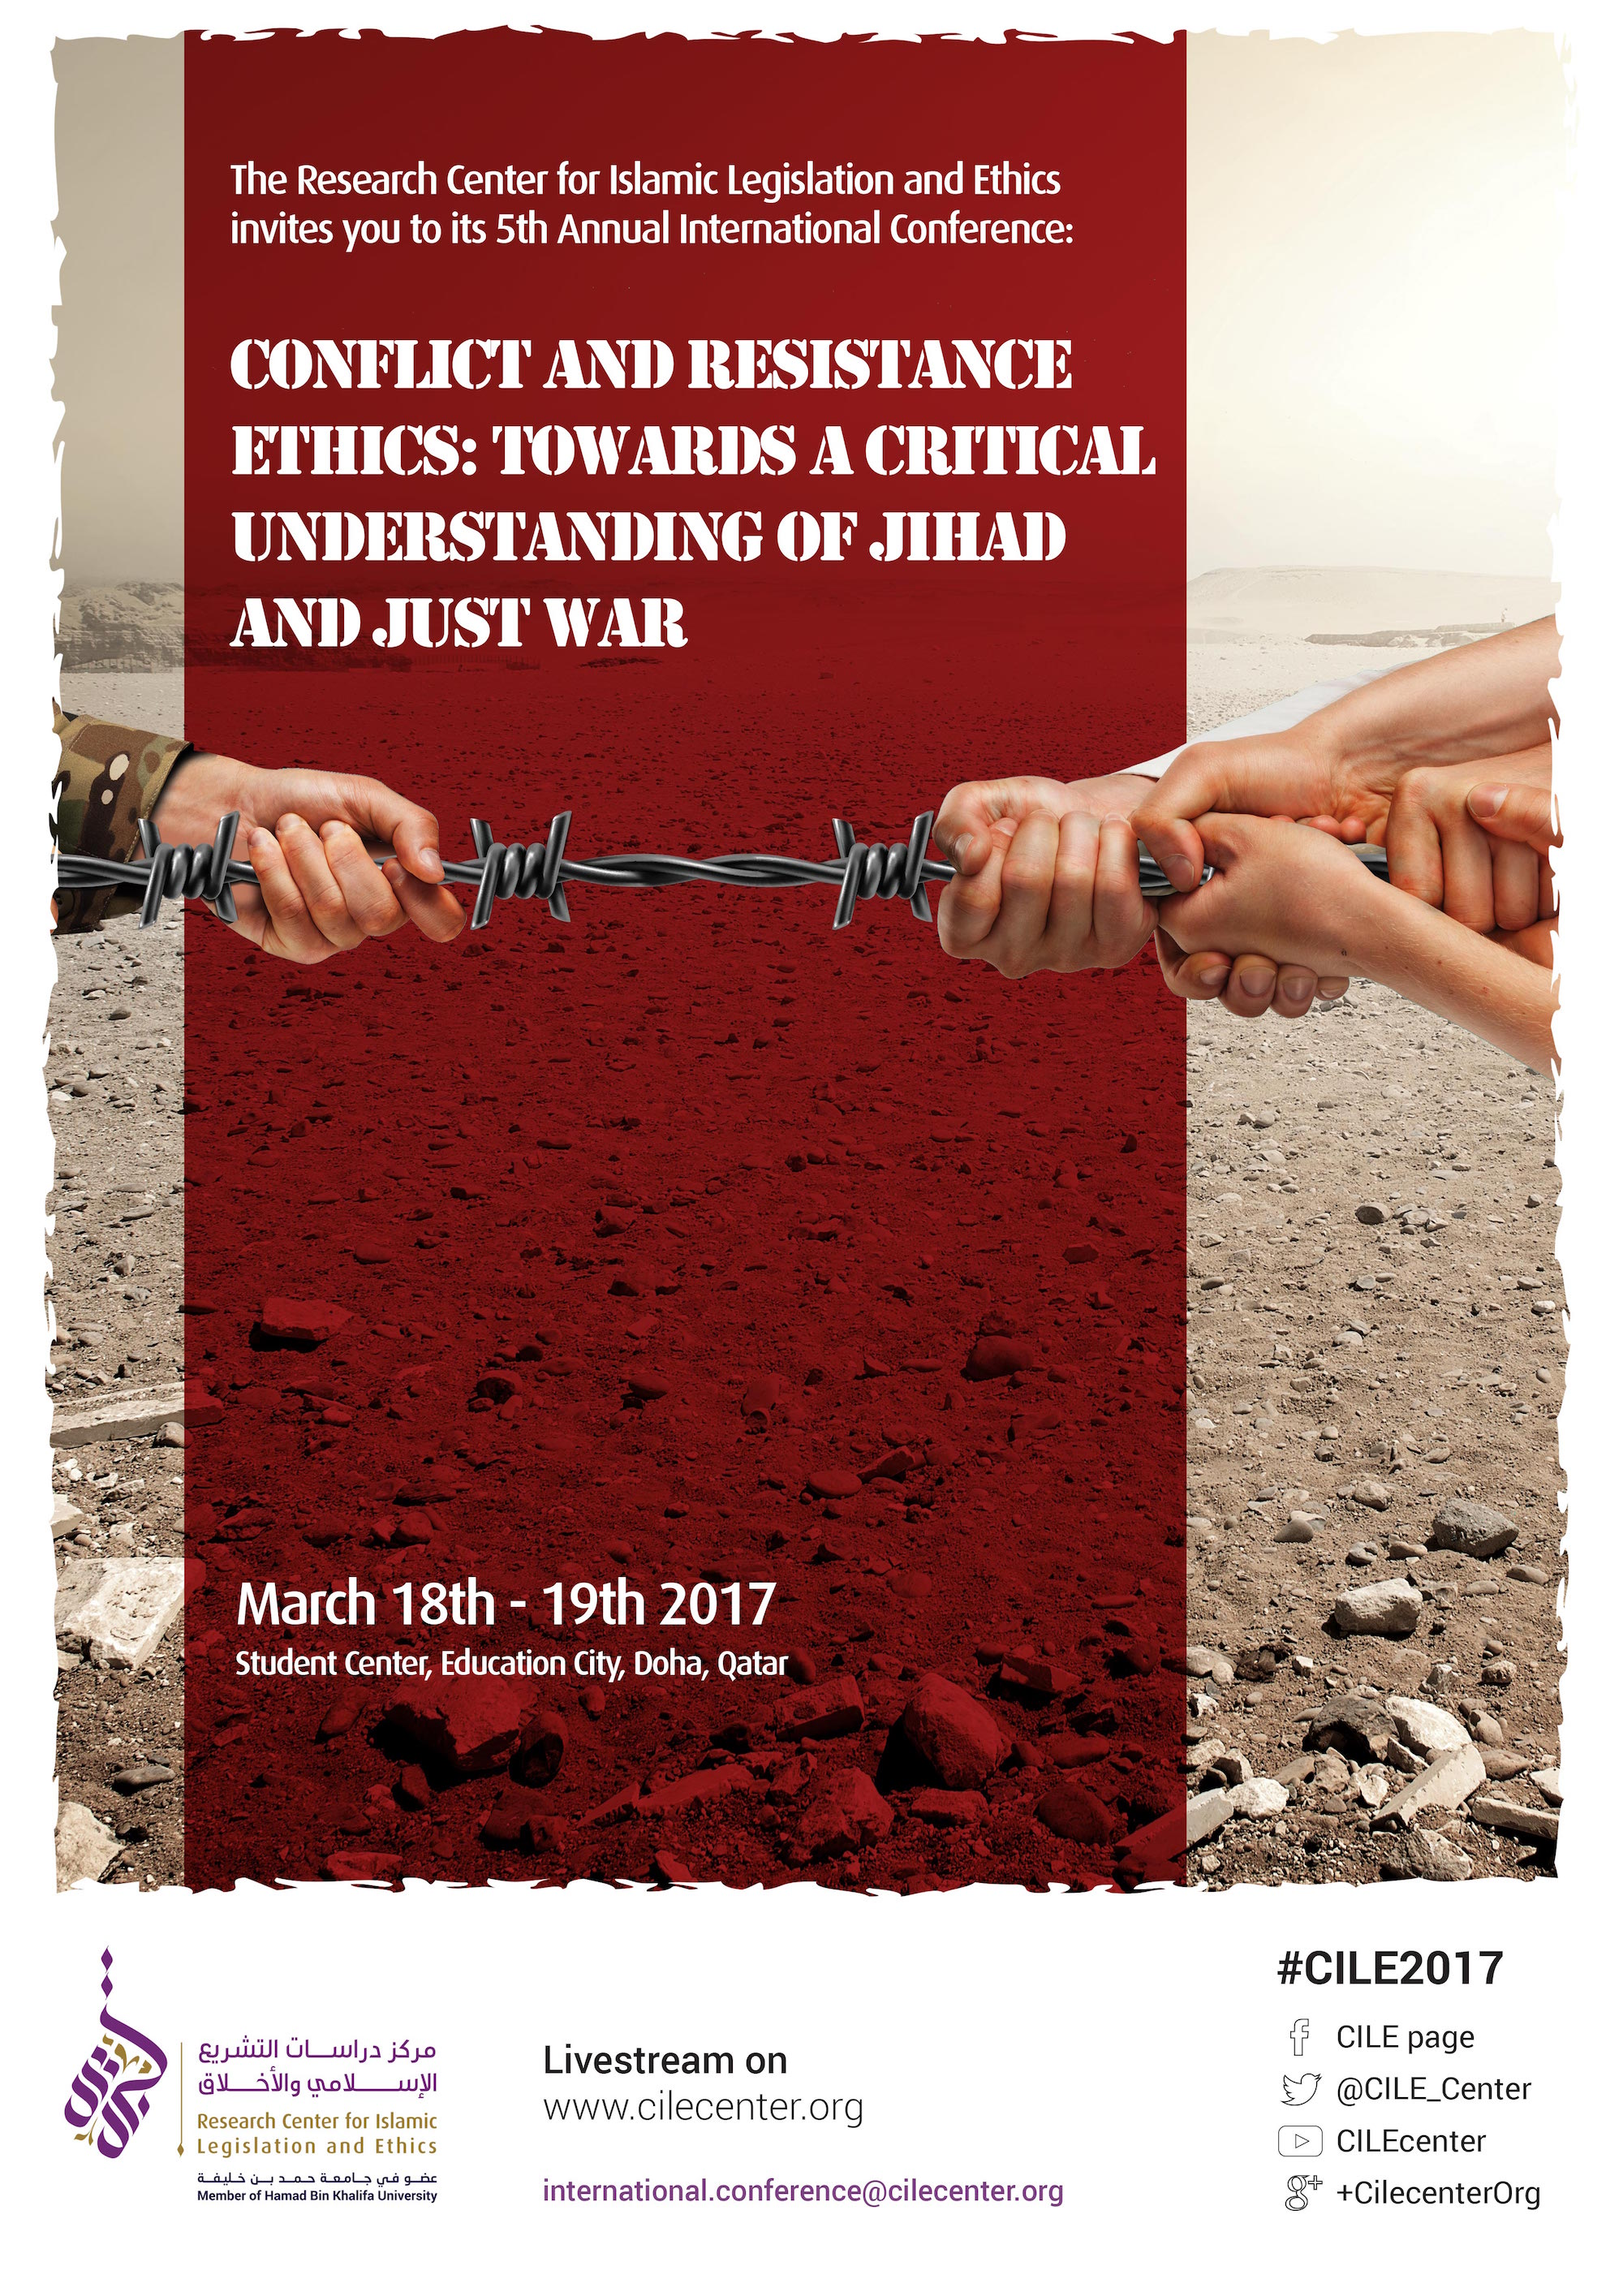 03/2017 Conflict and Resistance Ethics: Towards a critical understanding of Jihad and Just War